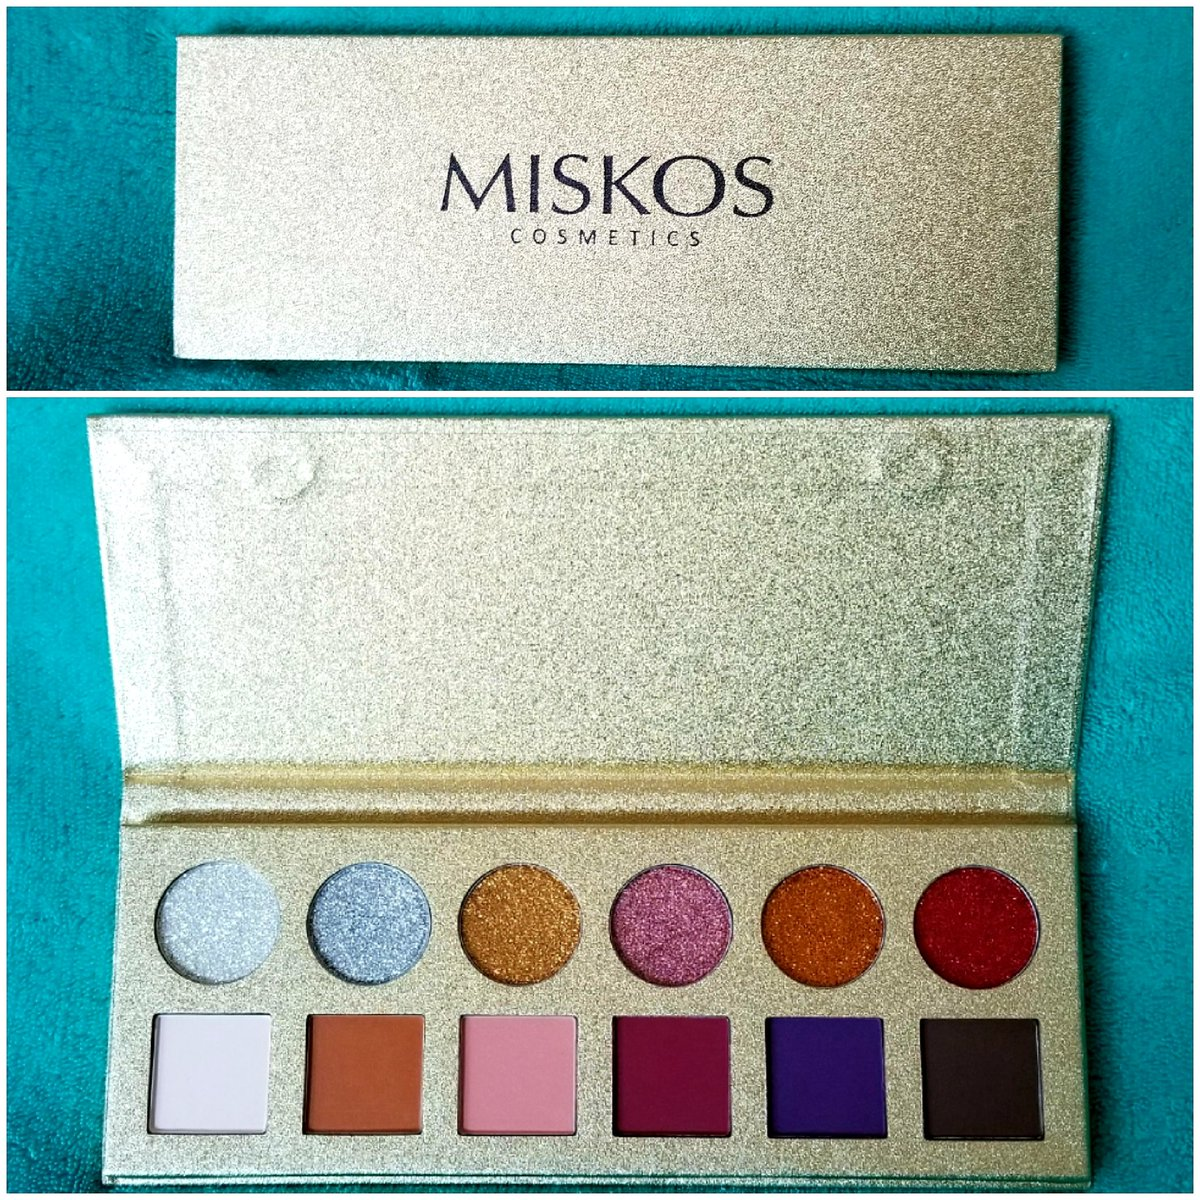 MISKOS 12 Colors Professional Eyeshadow Palette Set -6 glitter, 6 matte colors.  Great for everyday or use the glitter colors for a more glamorous look. Great eyeshadow kit. Order now and get 30% off using code: 412EYESHADOW https://t.co/ThBEs0eIGB #DiscountedForReview #MISKOS https://t.co/Yz6E1Cievi